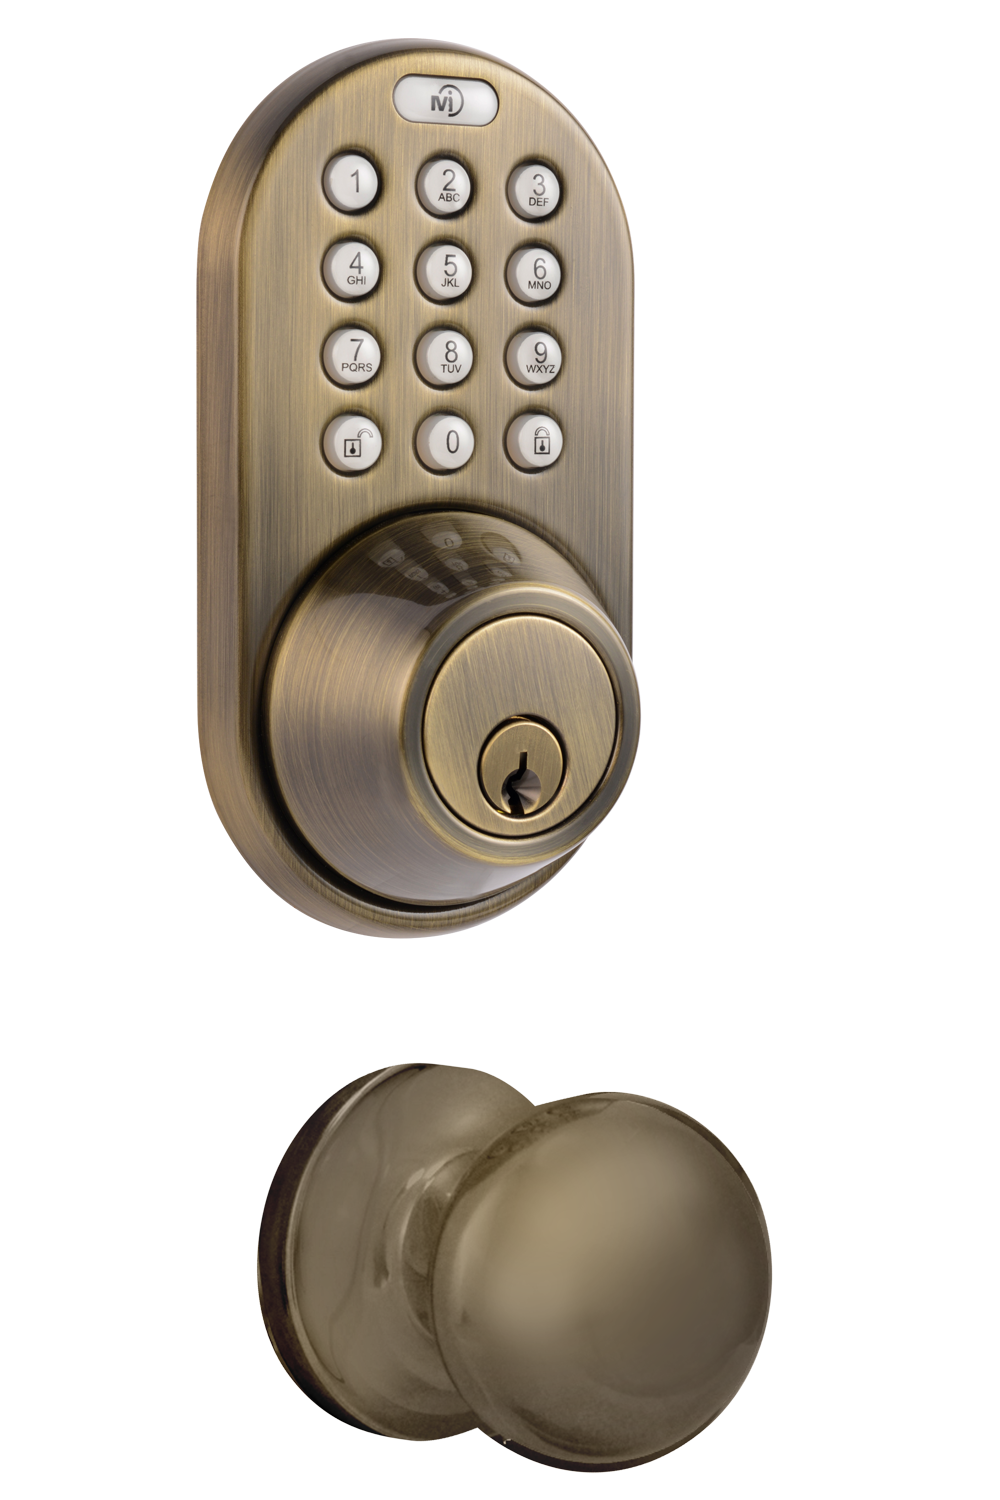 Keyless Entry Deadbolt and Door Knob Lock Combo Pack with Electronic Digital Keypad